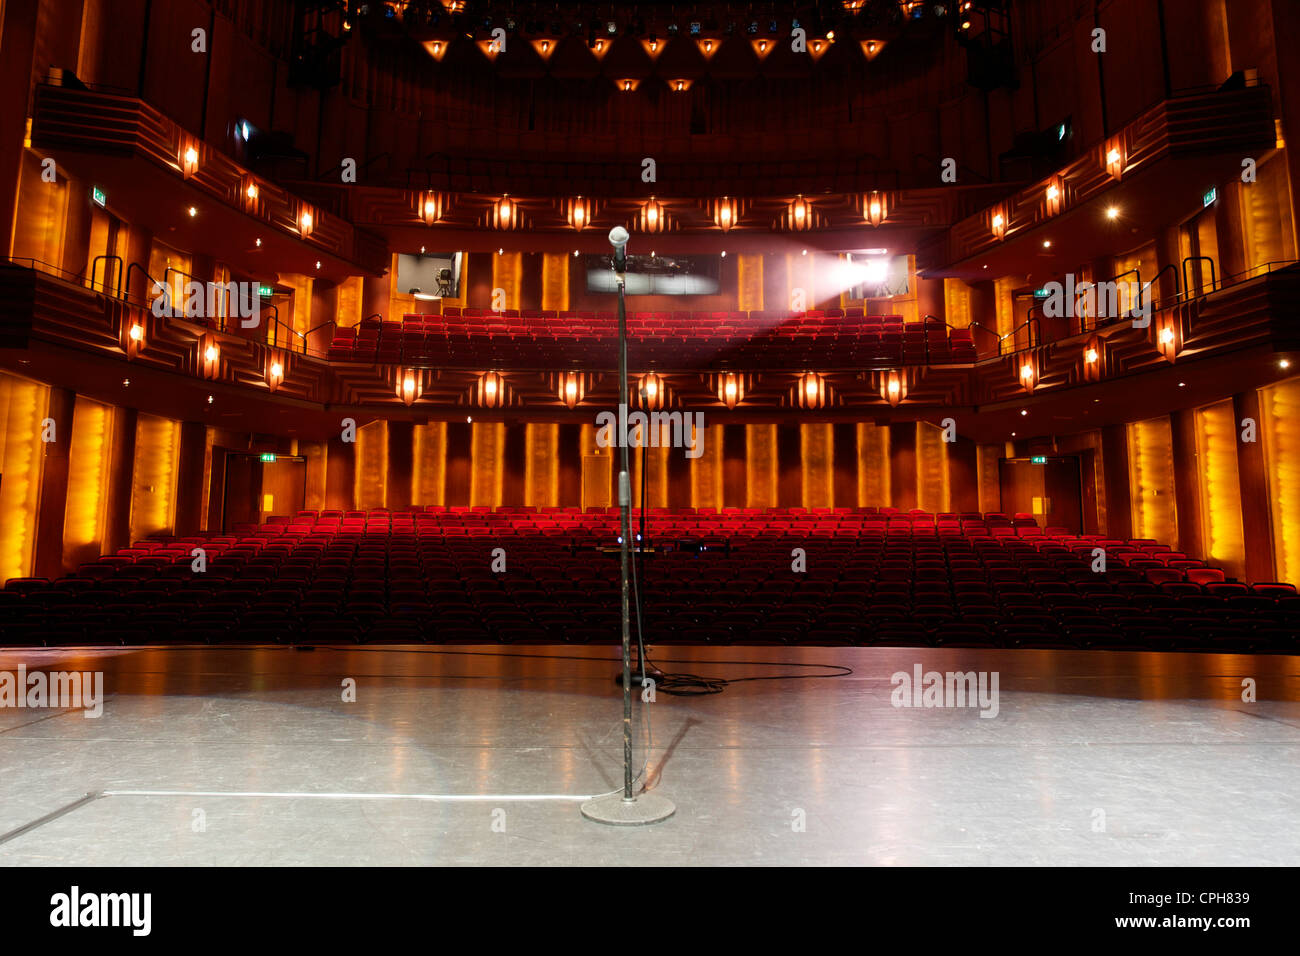 View From Stage Of Empty Auditorium Theatre Stock Photo